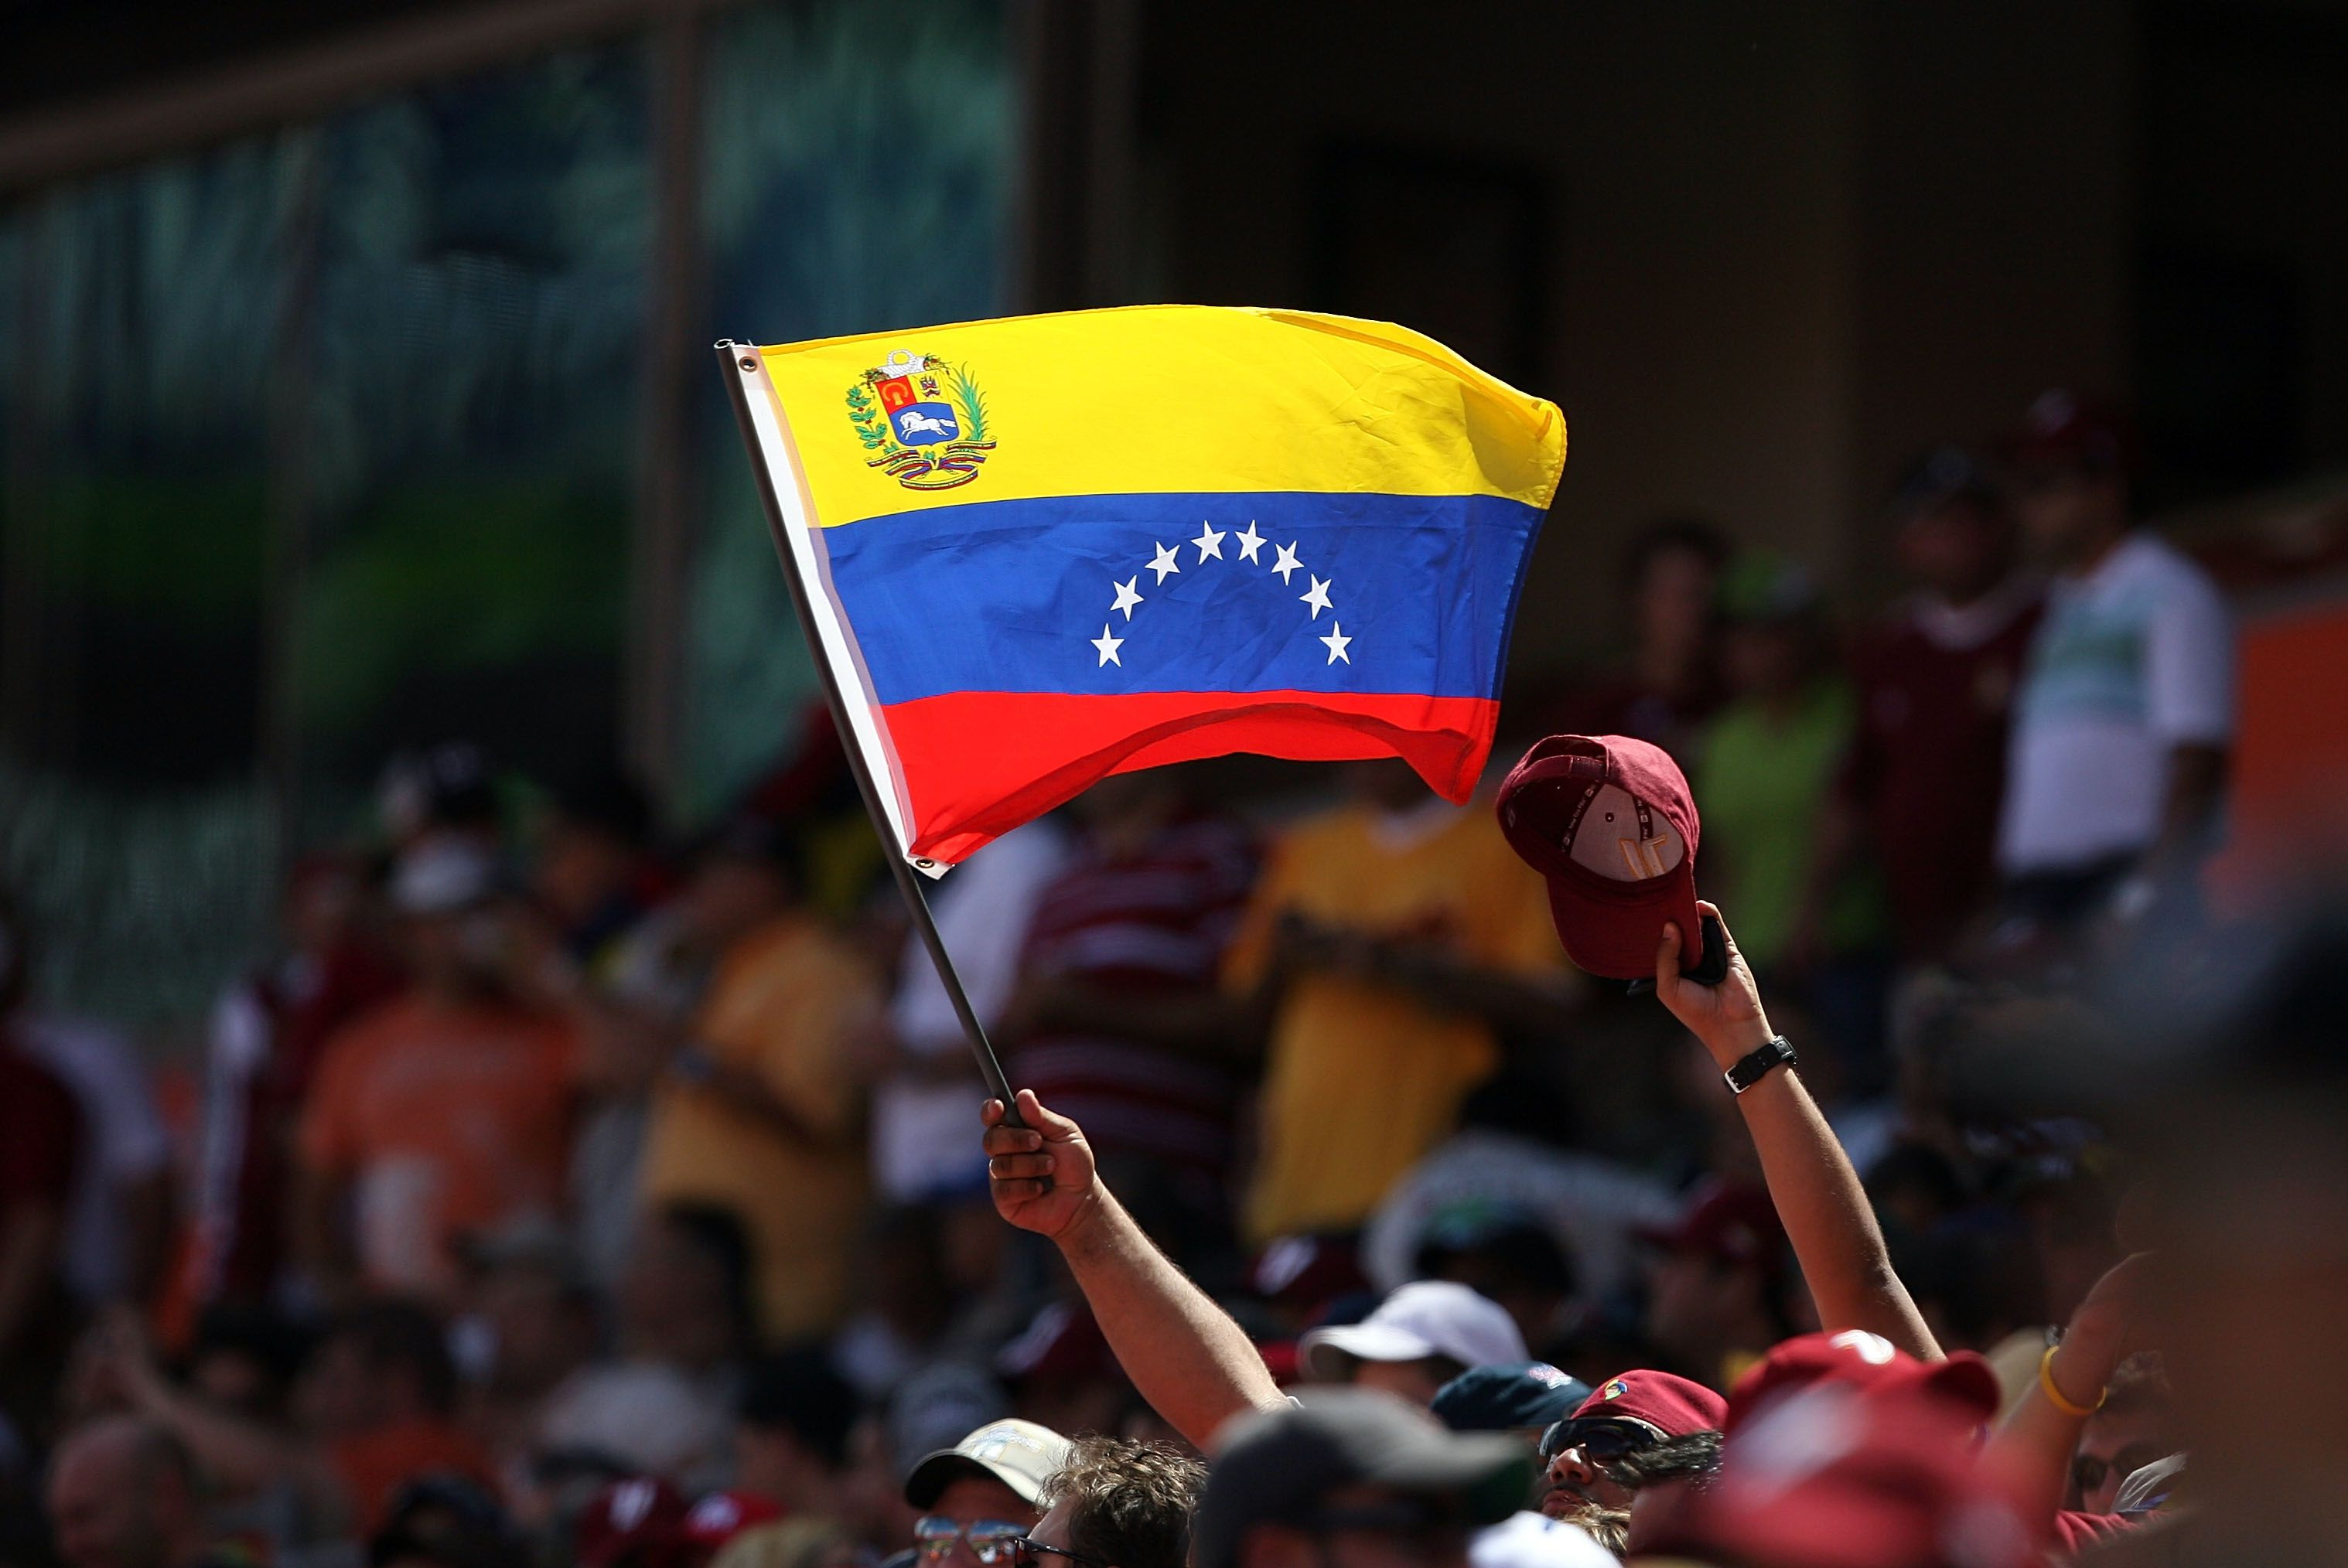 Baseball – the leading sport in Venezuela